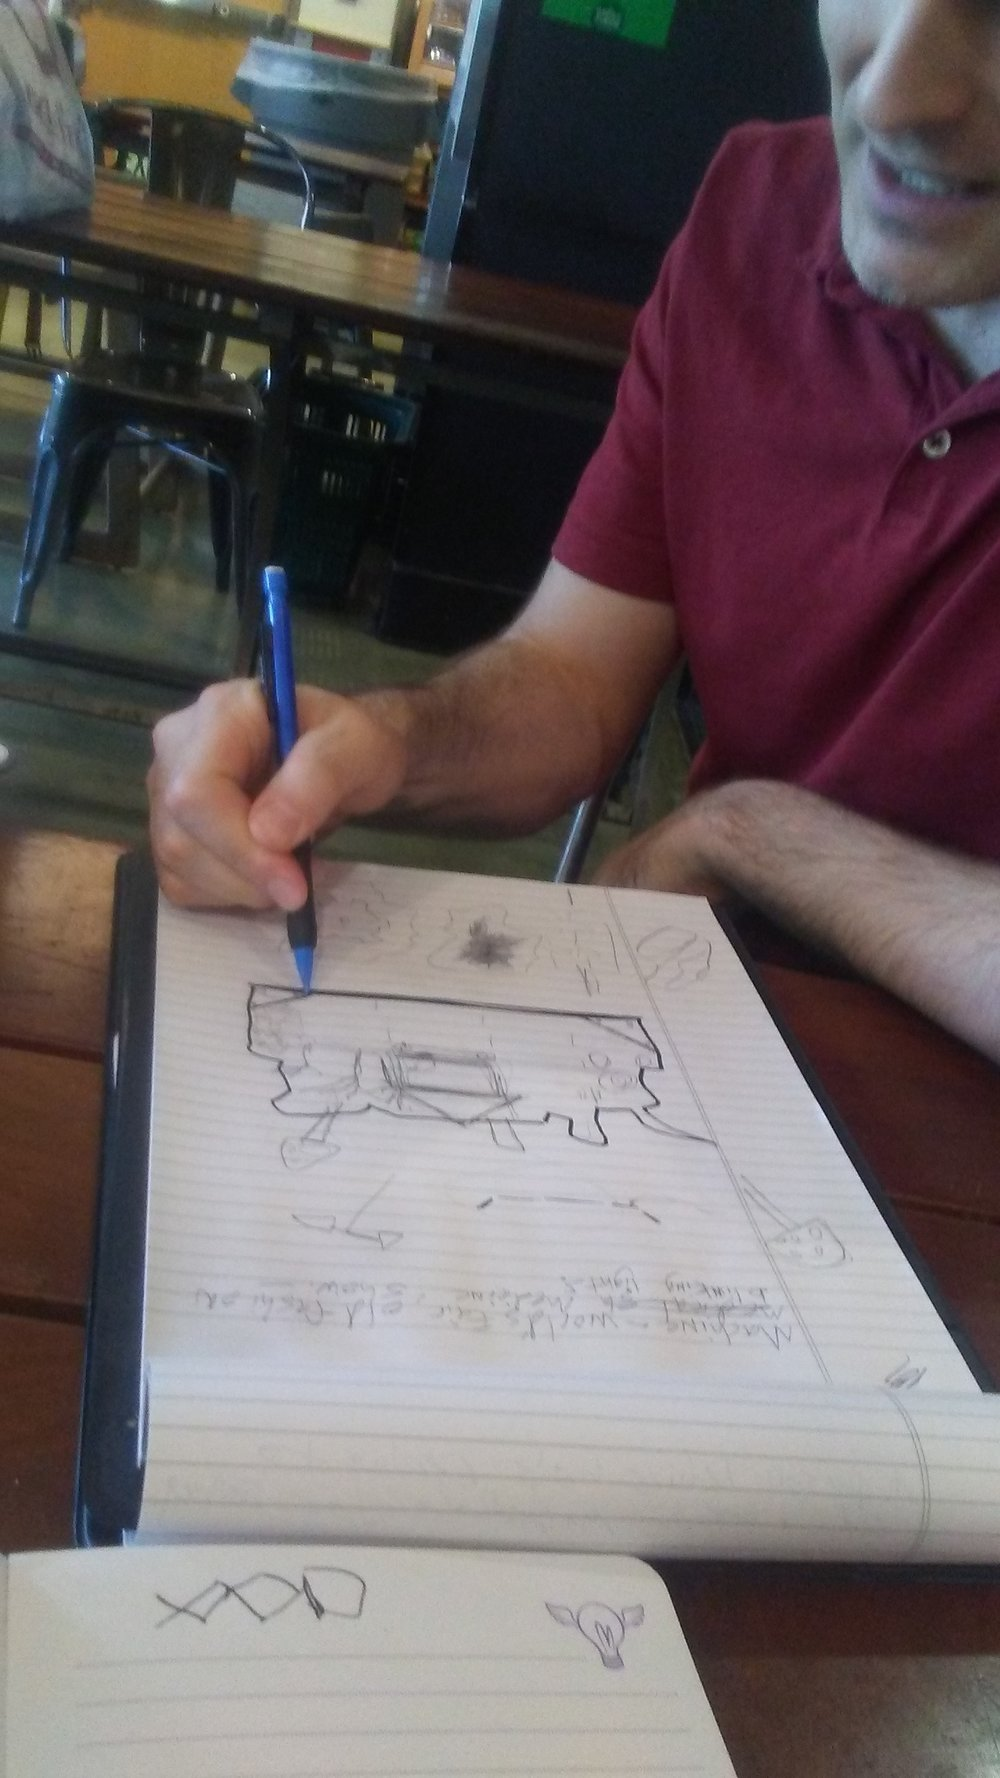 Jacob's very earliest drawing of the machine!